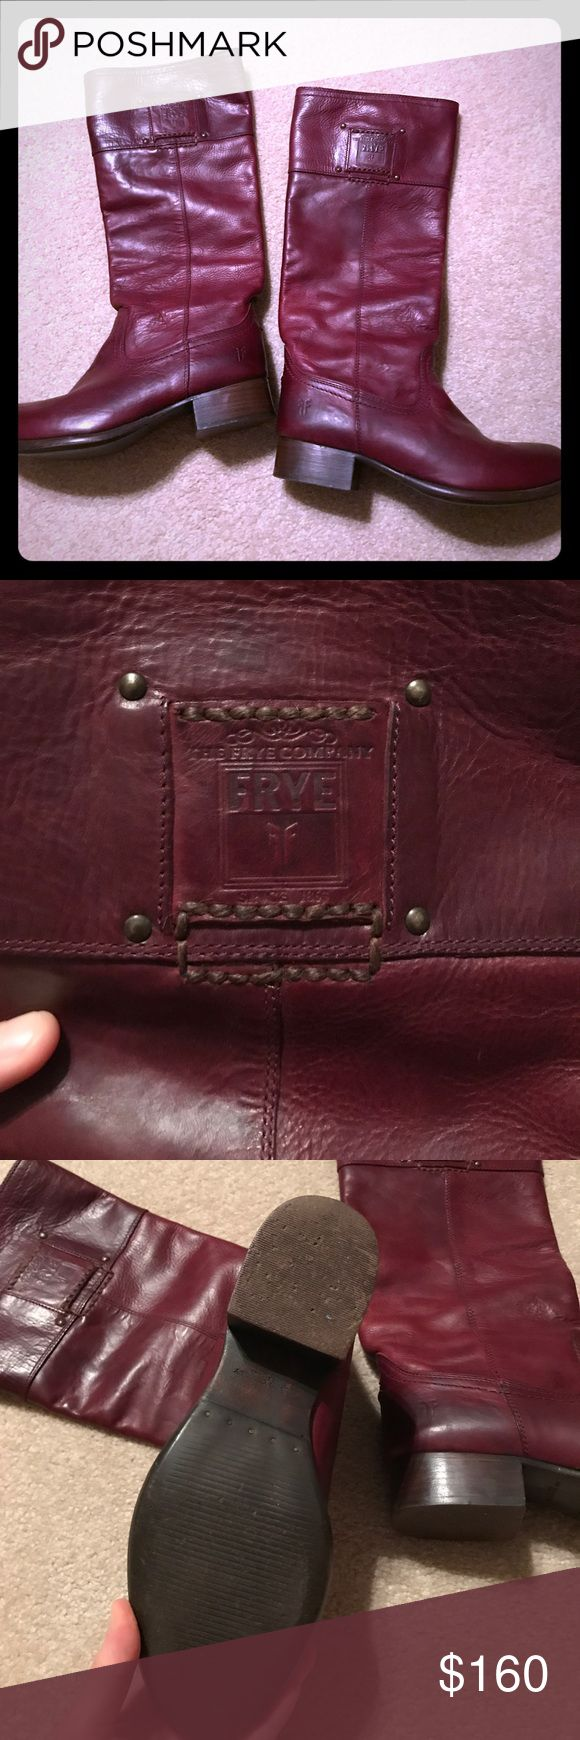 Size 5.5 burgundy frye boots Size 5.5 burgundy leather frye riding boots. Gently worn. Great condition. Embossed Amelia boot, purchased in 2013, worn 4 times. Frye Shoes Ankle Boots & Booties